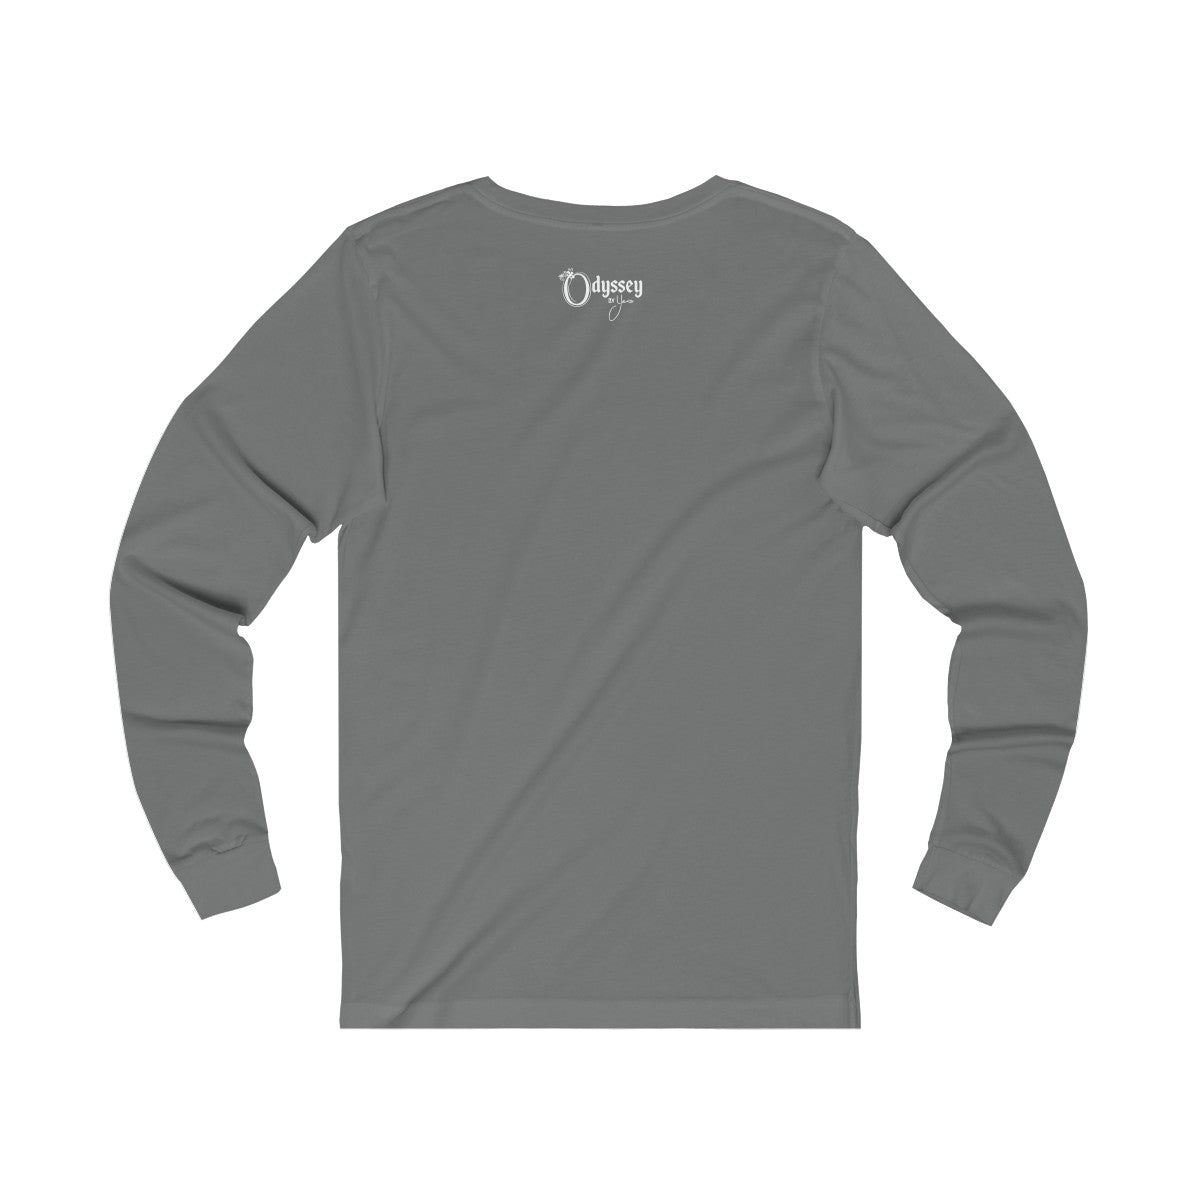 Odyssey Power Love Sound Mind Women's Long Sleeve Tee